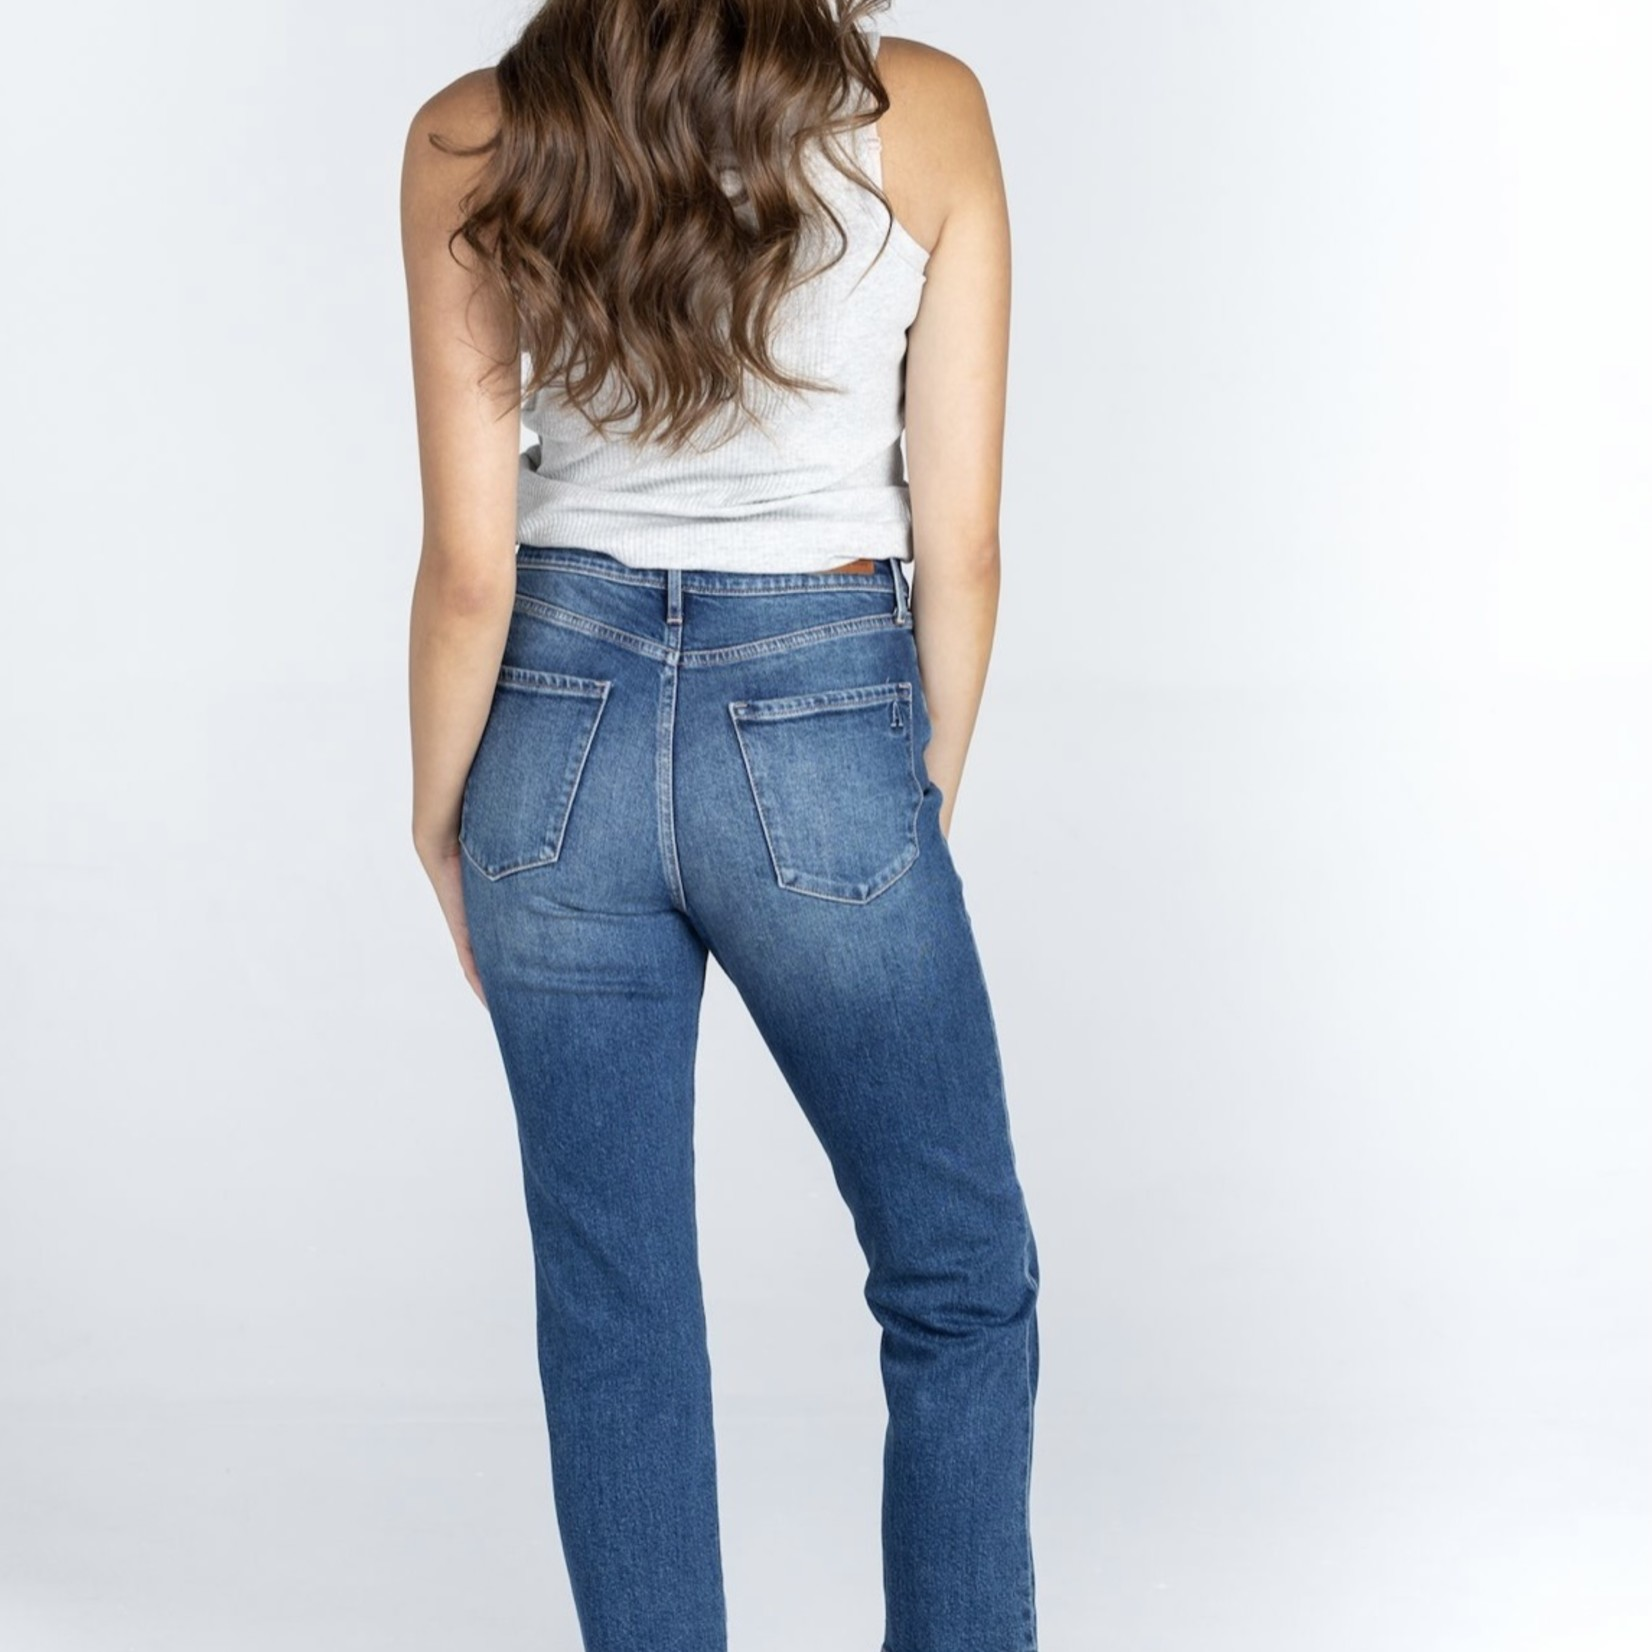 Articles Of Society Articles of Society Kate Hi Rise Straight Crop Jeans